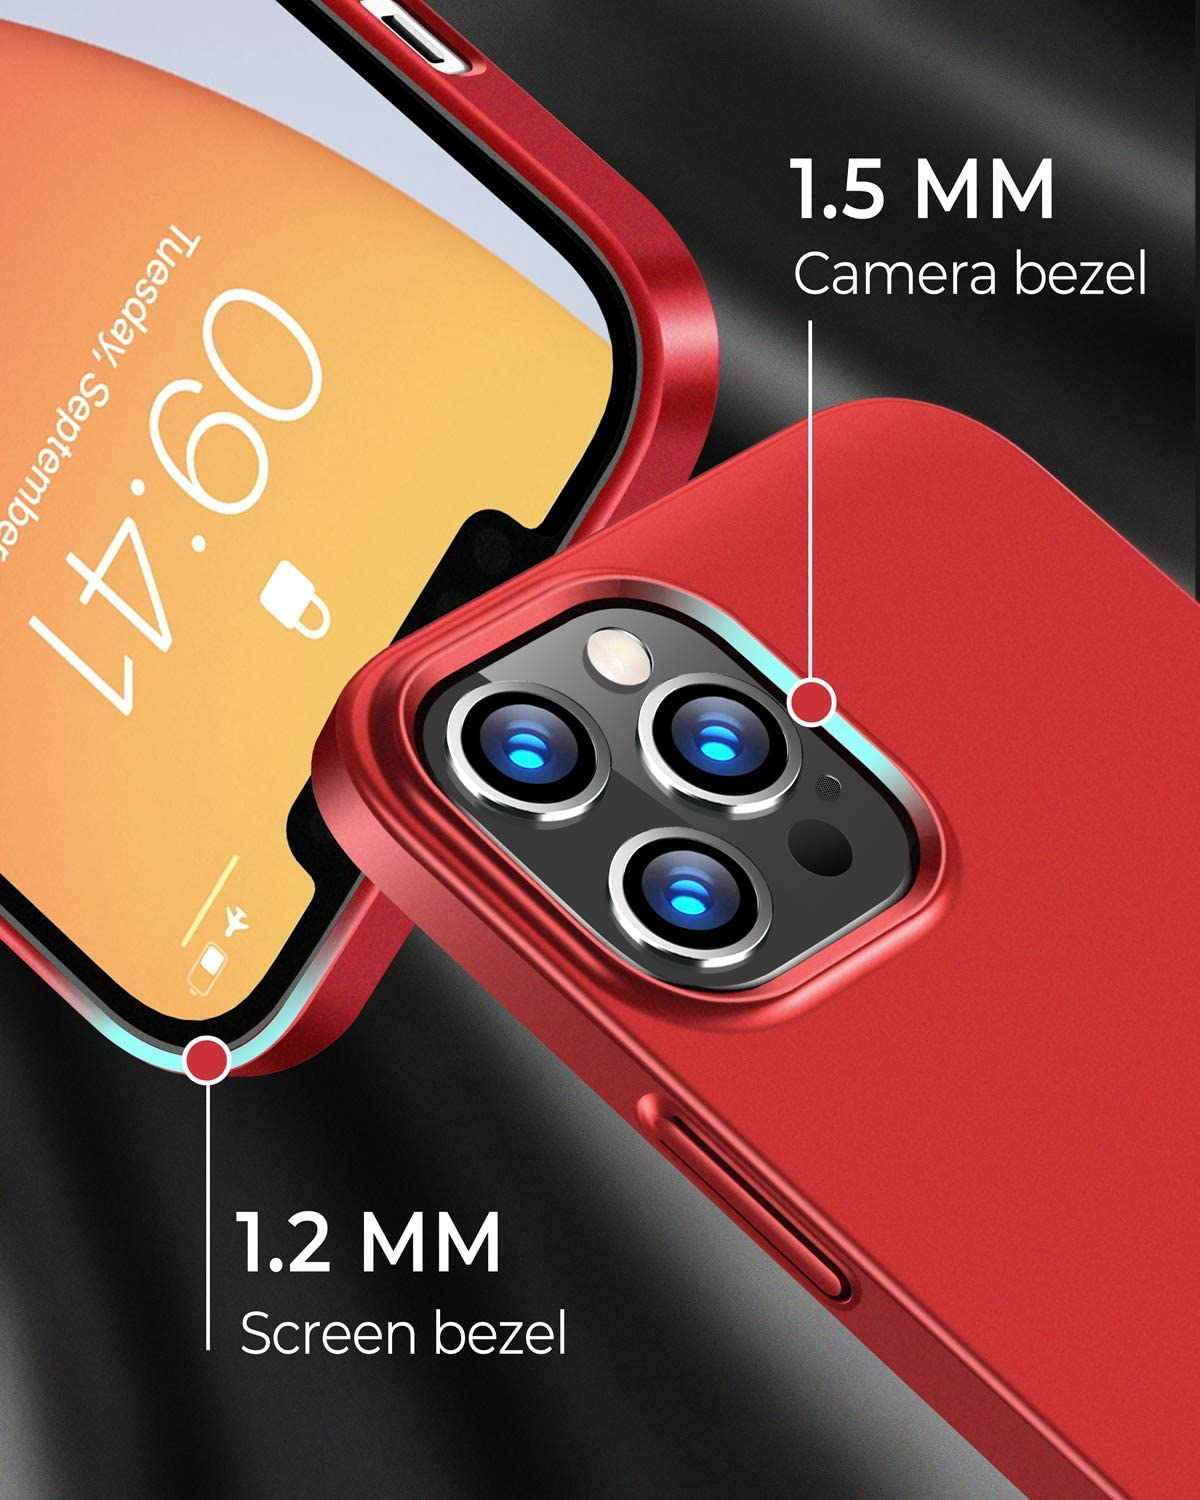 RANVOO iPhone 12 Pro Max-Compatible Slim Fit Case - Metal Backing Paint, Anti-Fingerprint, Scratchproof & Smooth Surface - Supports MagSafe & Wireless Charging - Includes 2 Glass Screen Protectors-RED